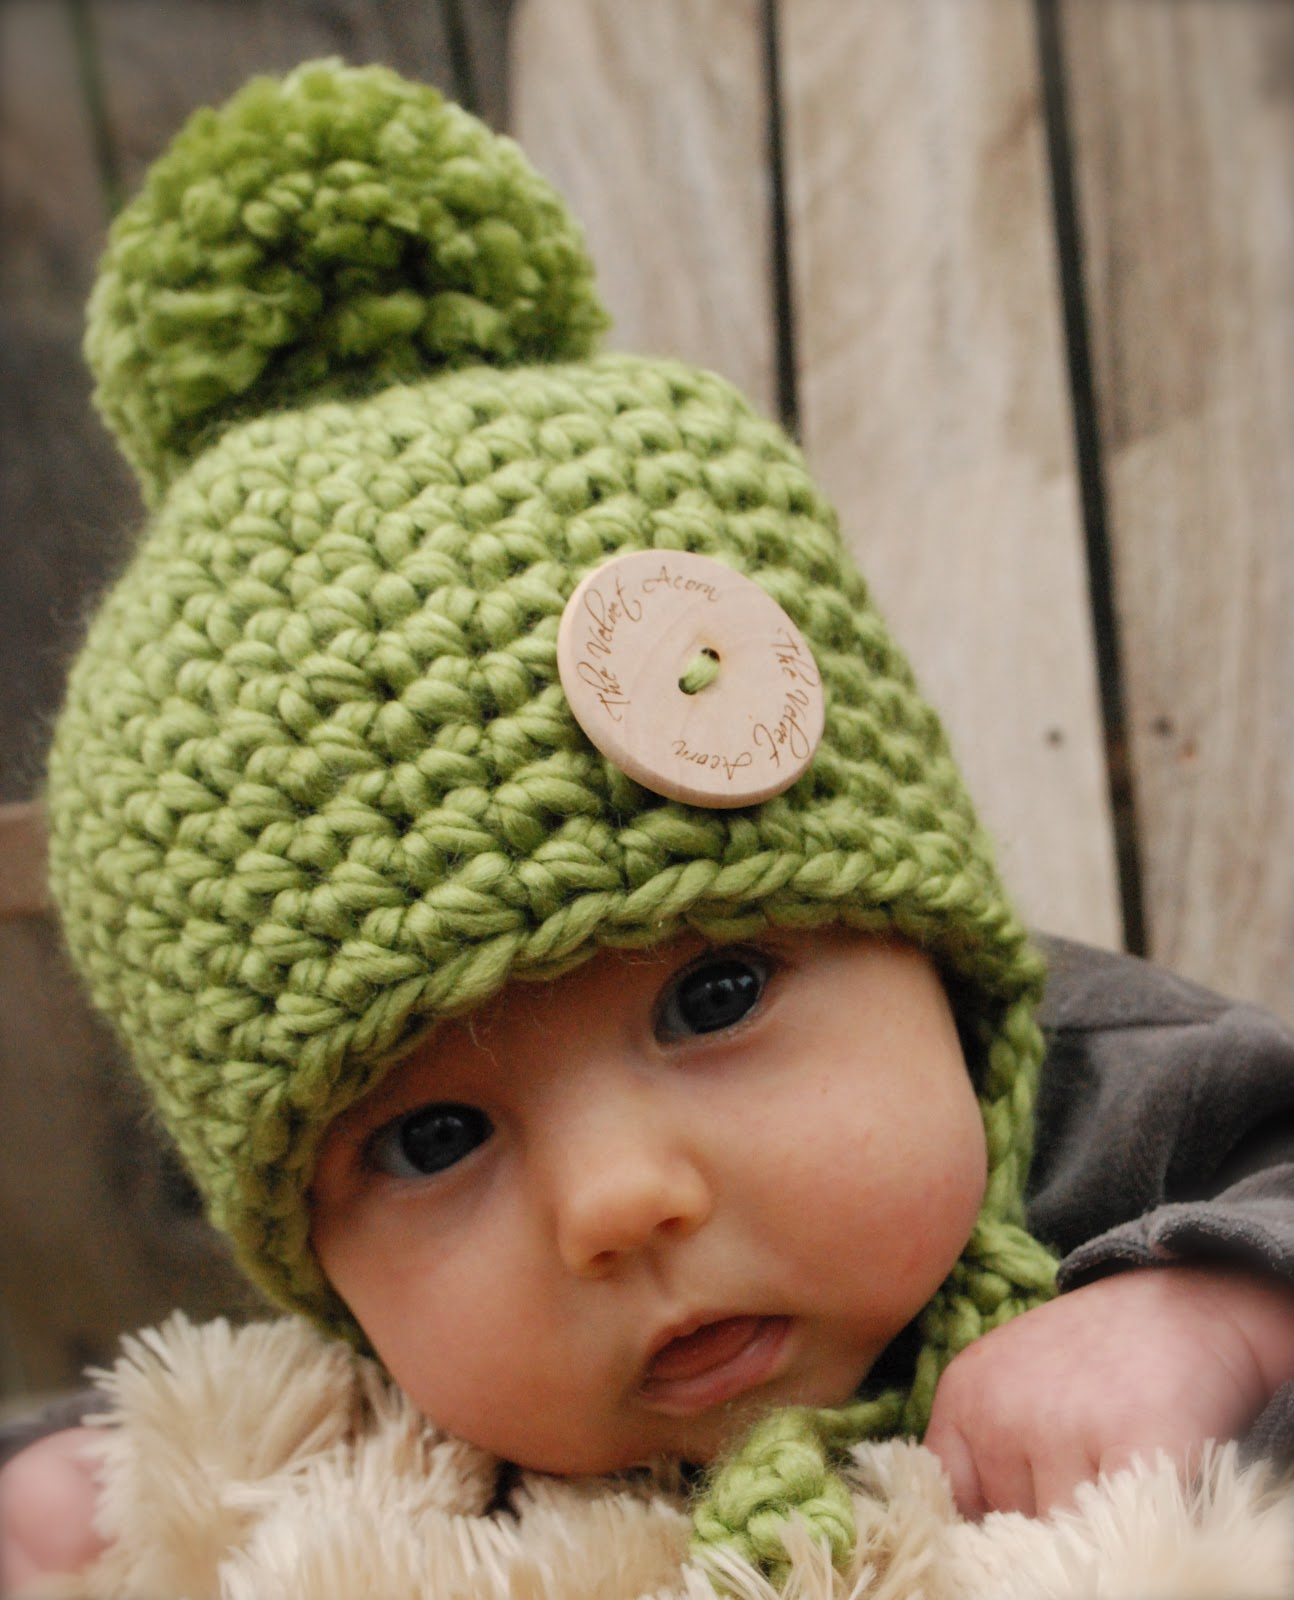 Knitting Pattern For Acorn Hat : The Velvet Acorn: New baby collection hat!